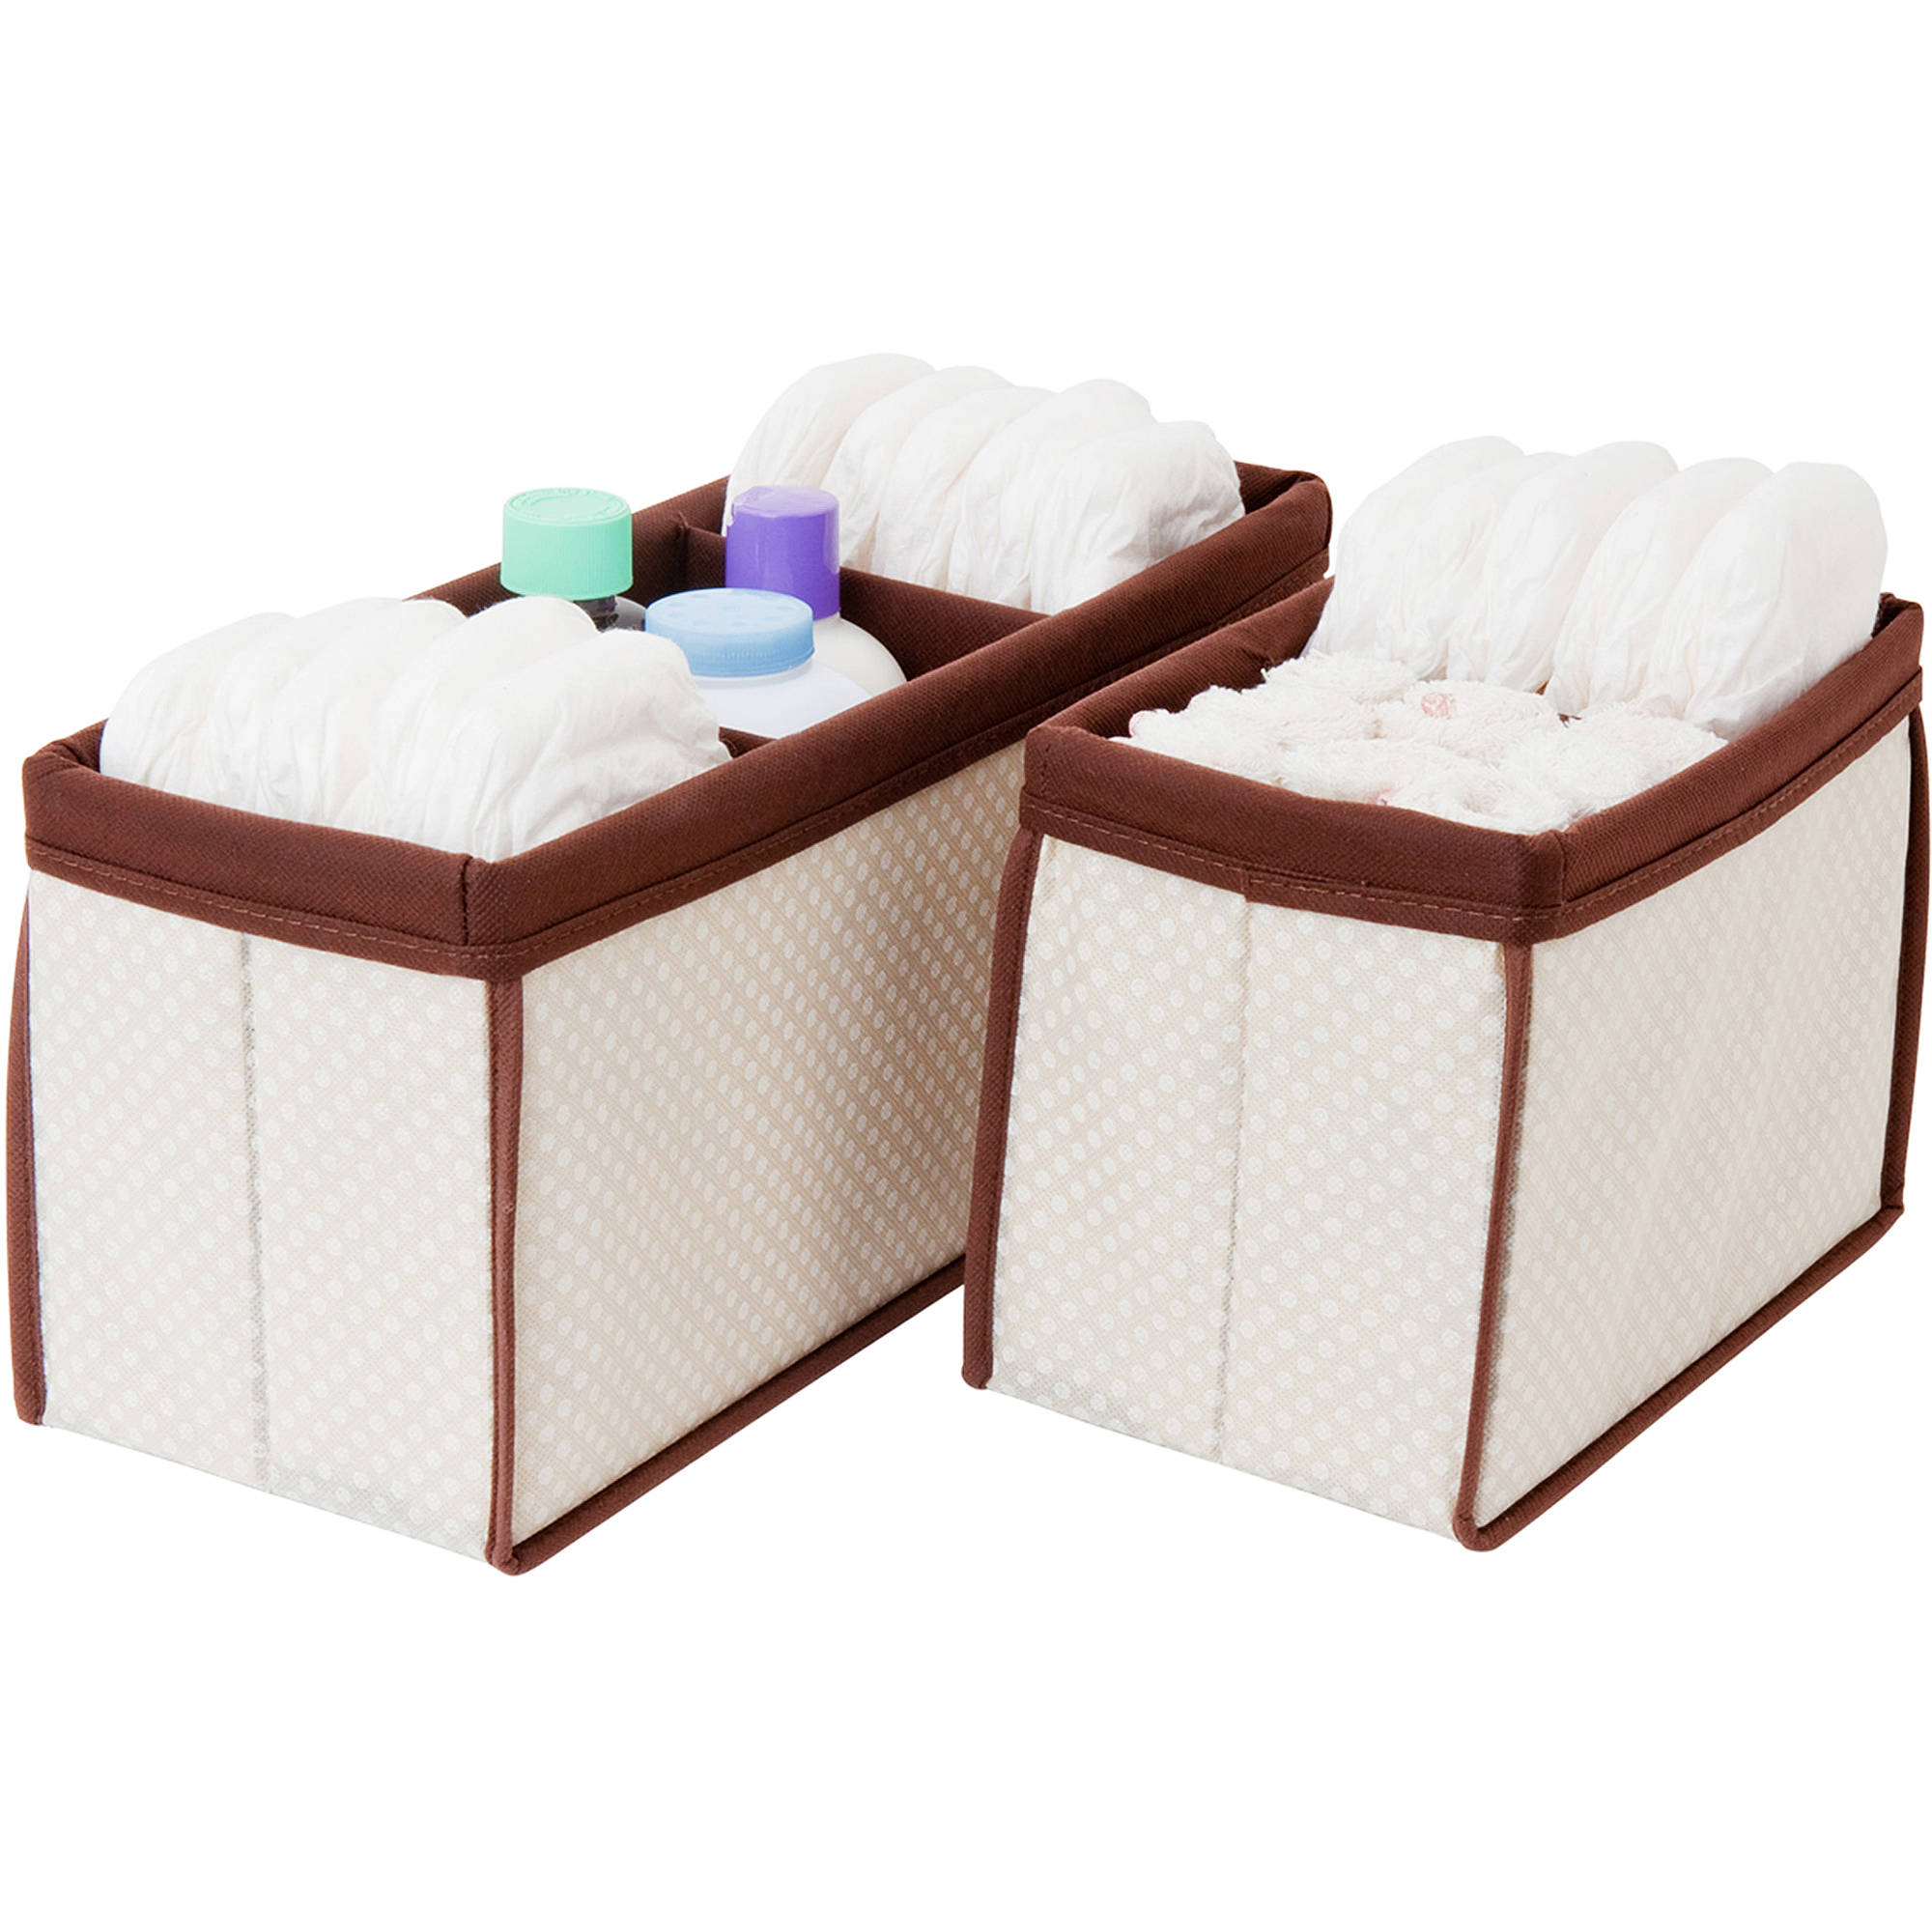 Nursery Organizer Bins, Set of 2, Choose Your Color